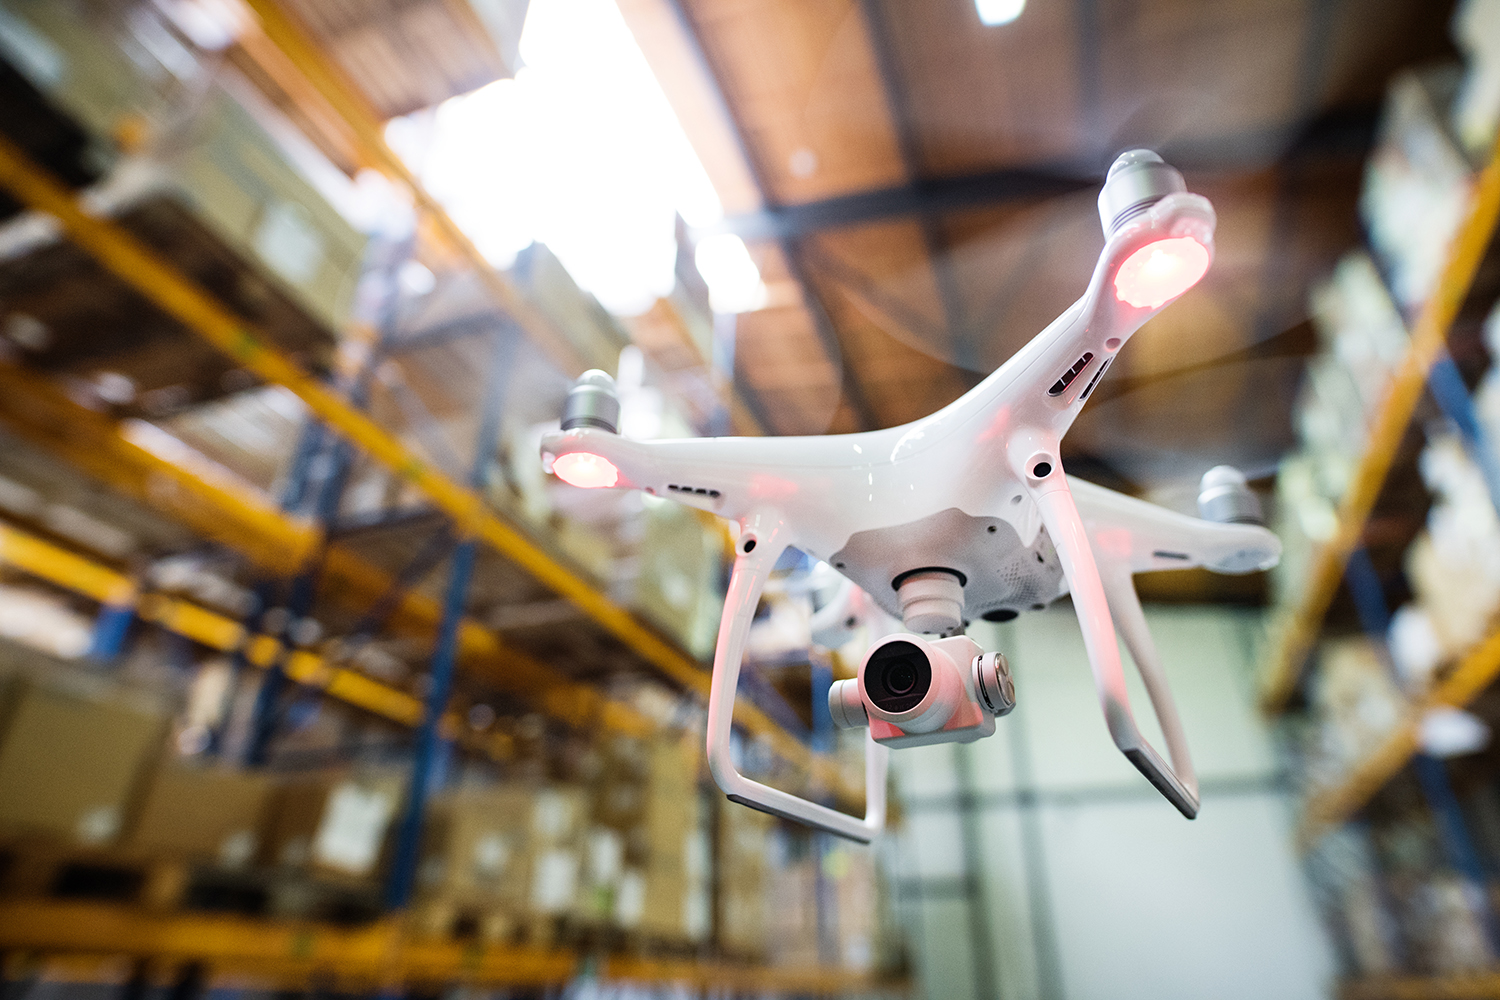 Warehouse Management Using Drones and ERP